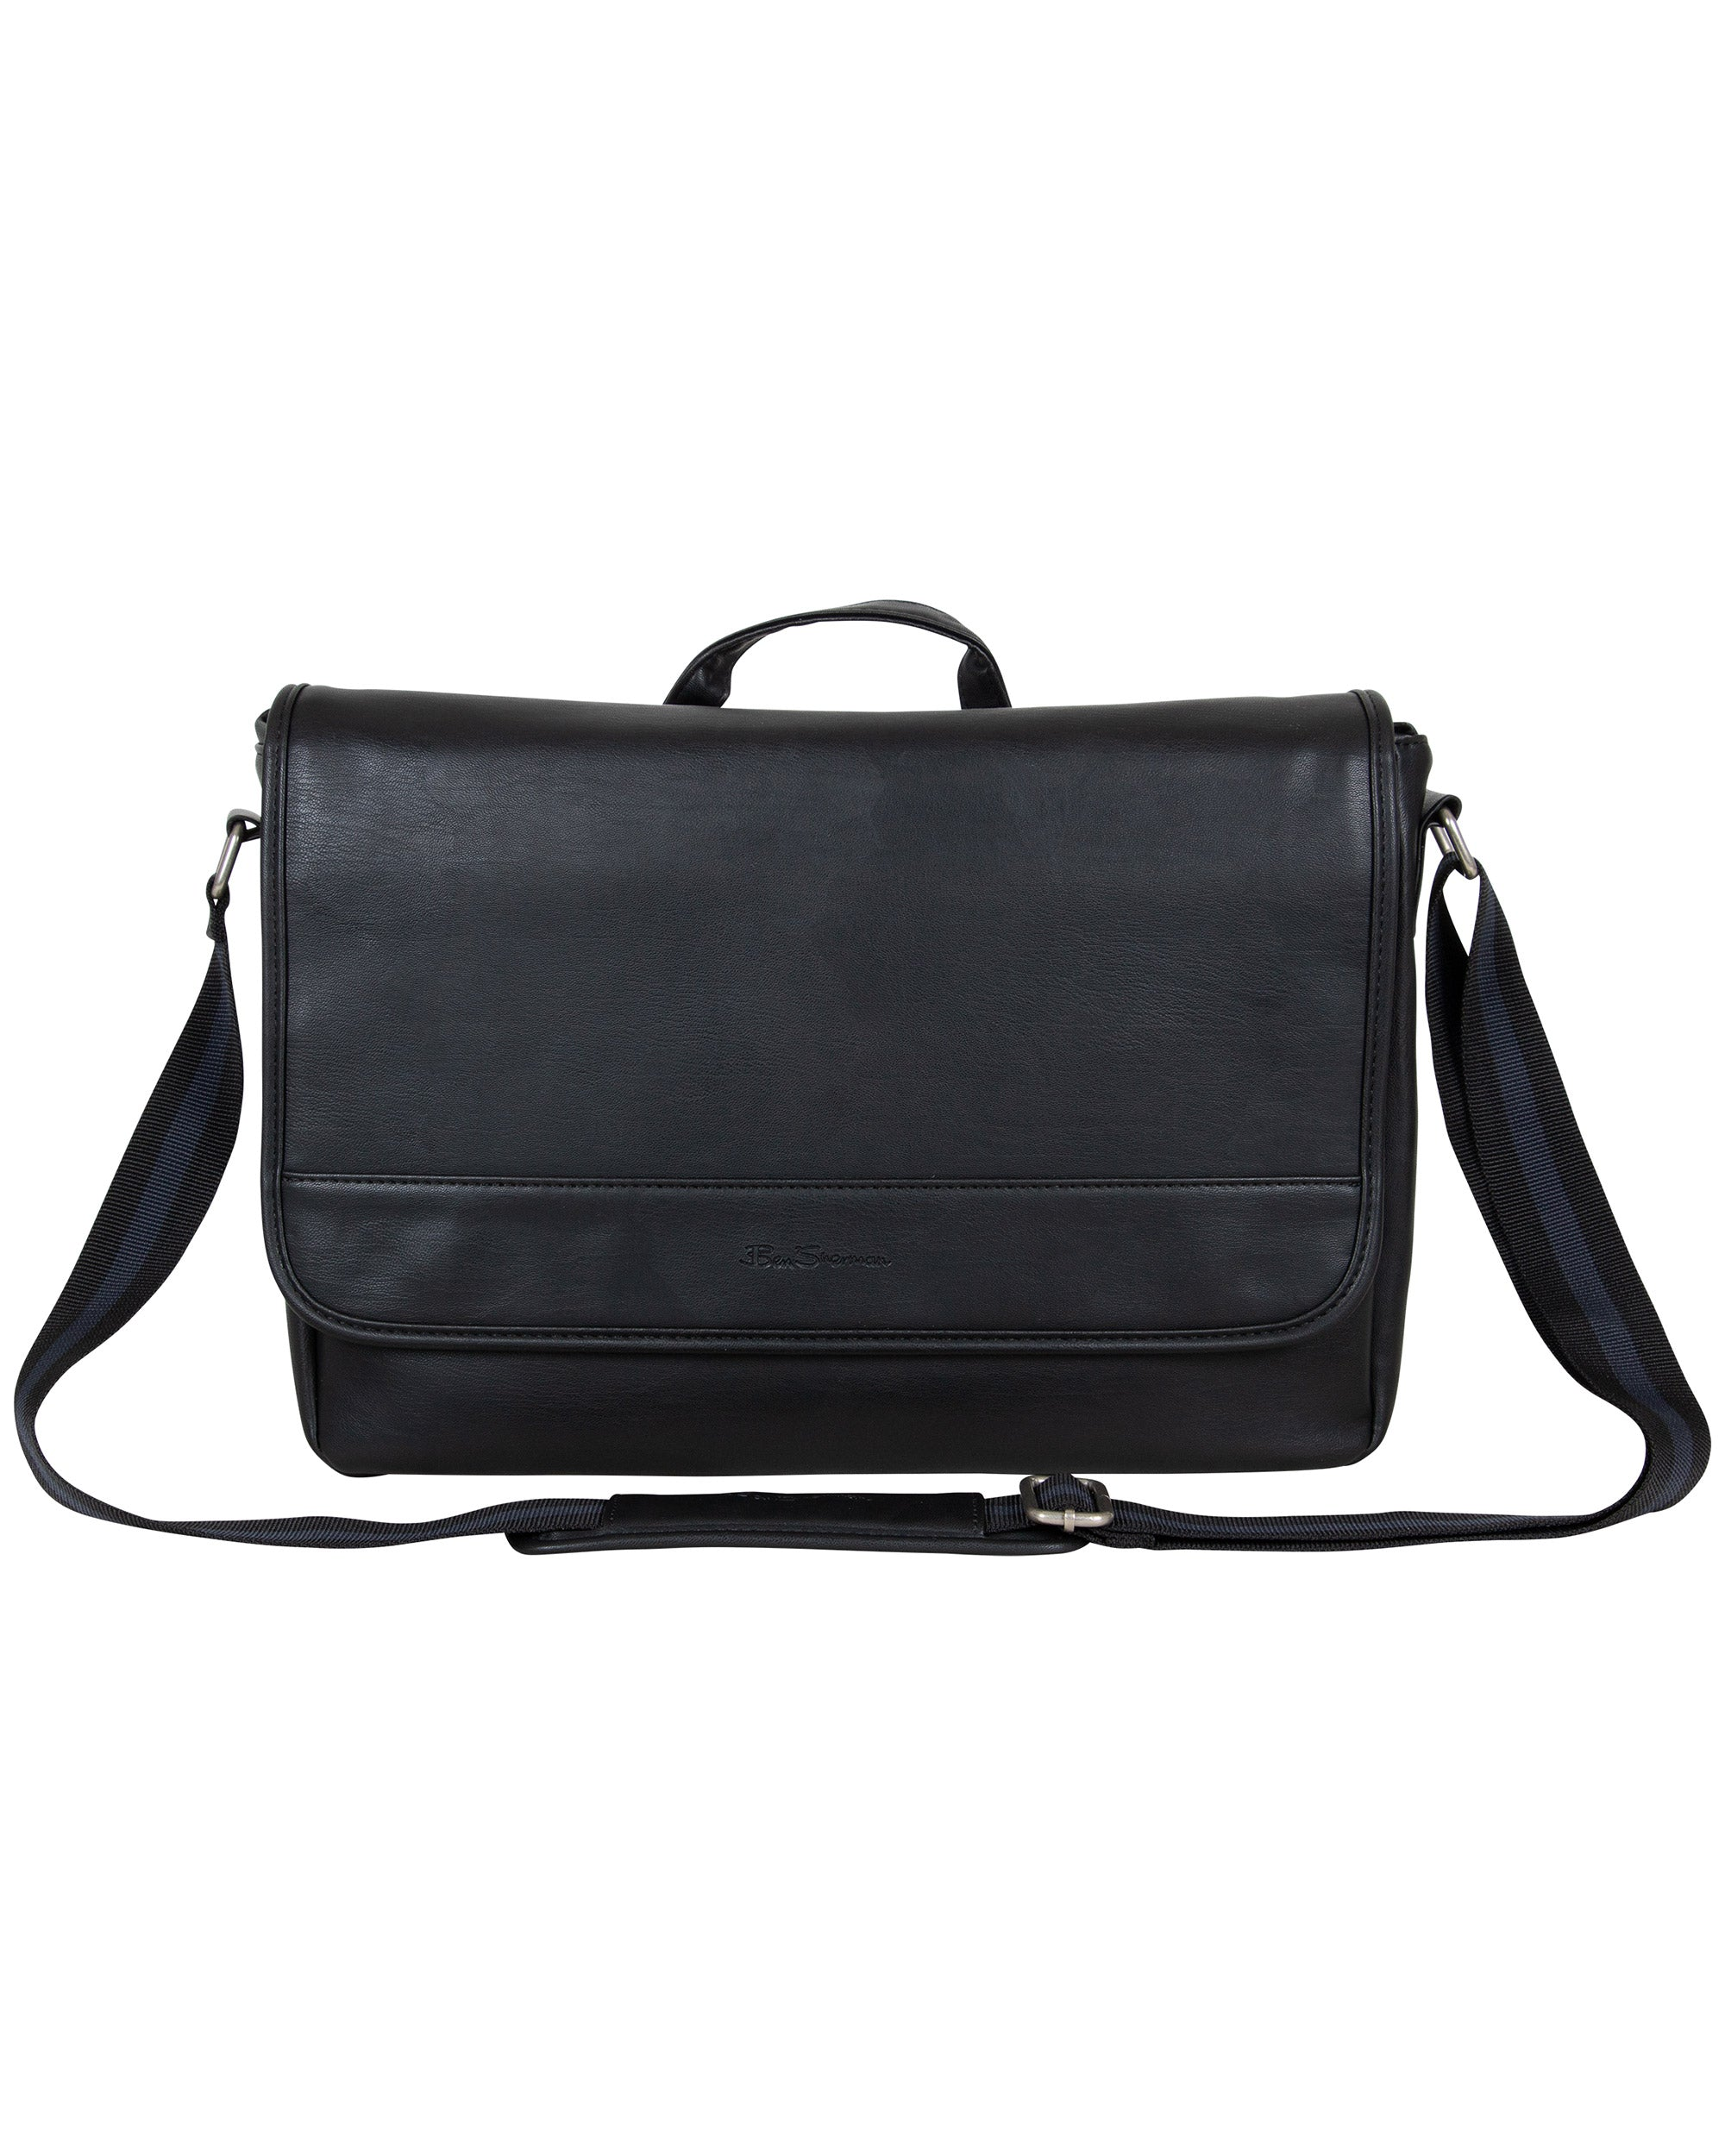 "Pristine Prominence Single-Compartment Flapover 15"" Laptop Messenger Bag - Black"